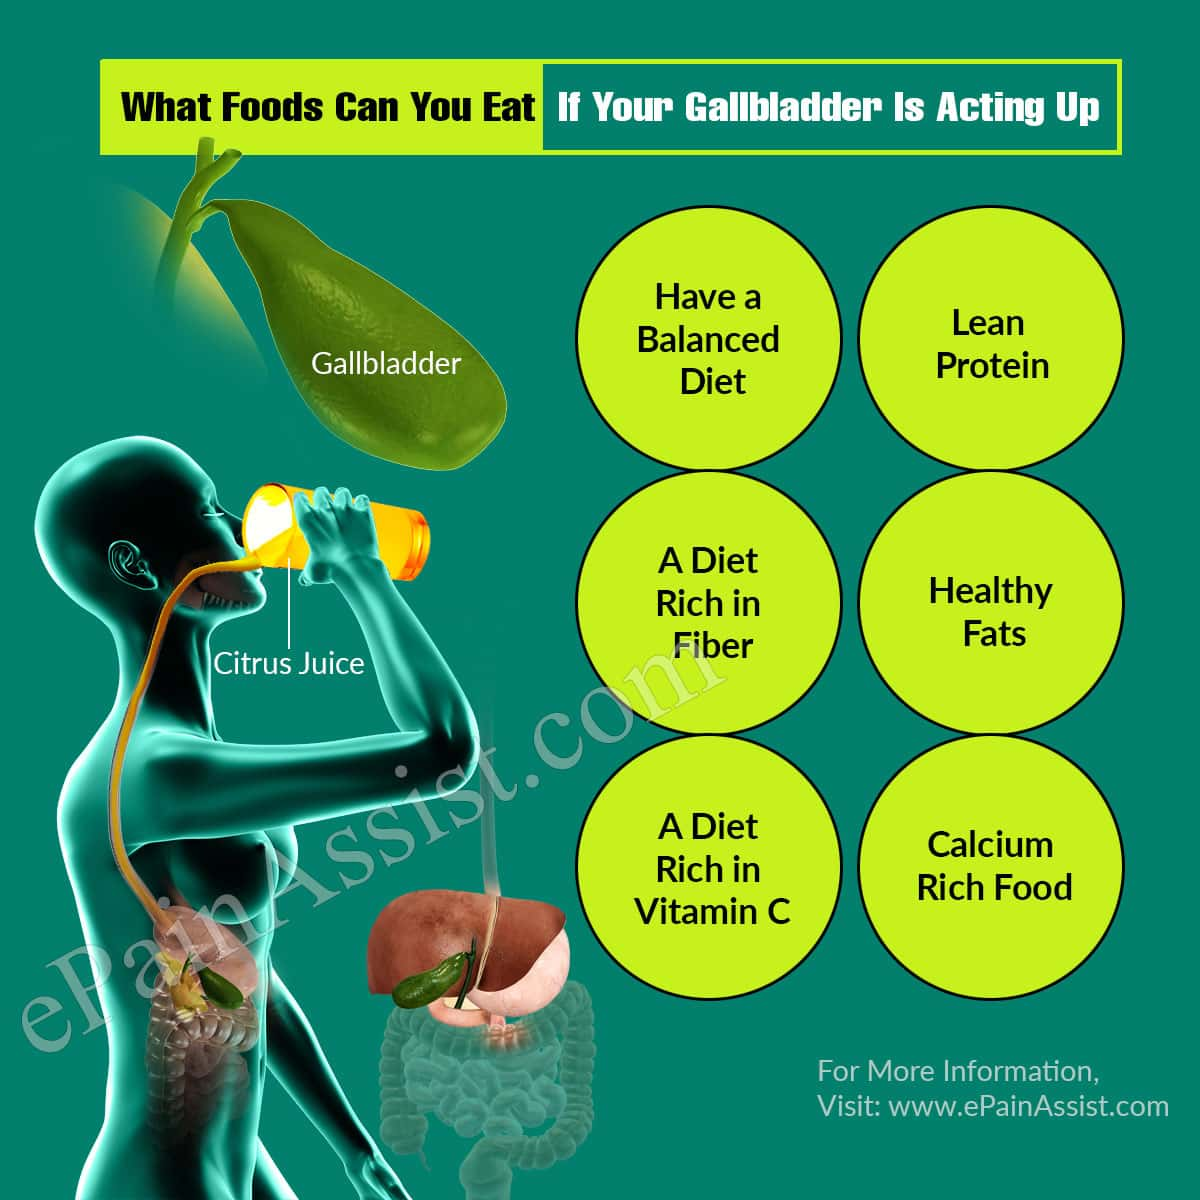 What Foods Can You Eat If Your Gallbladder Is Acting Up